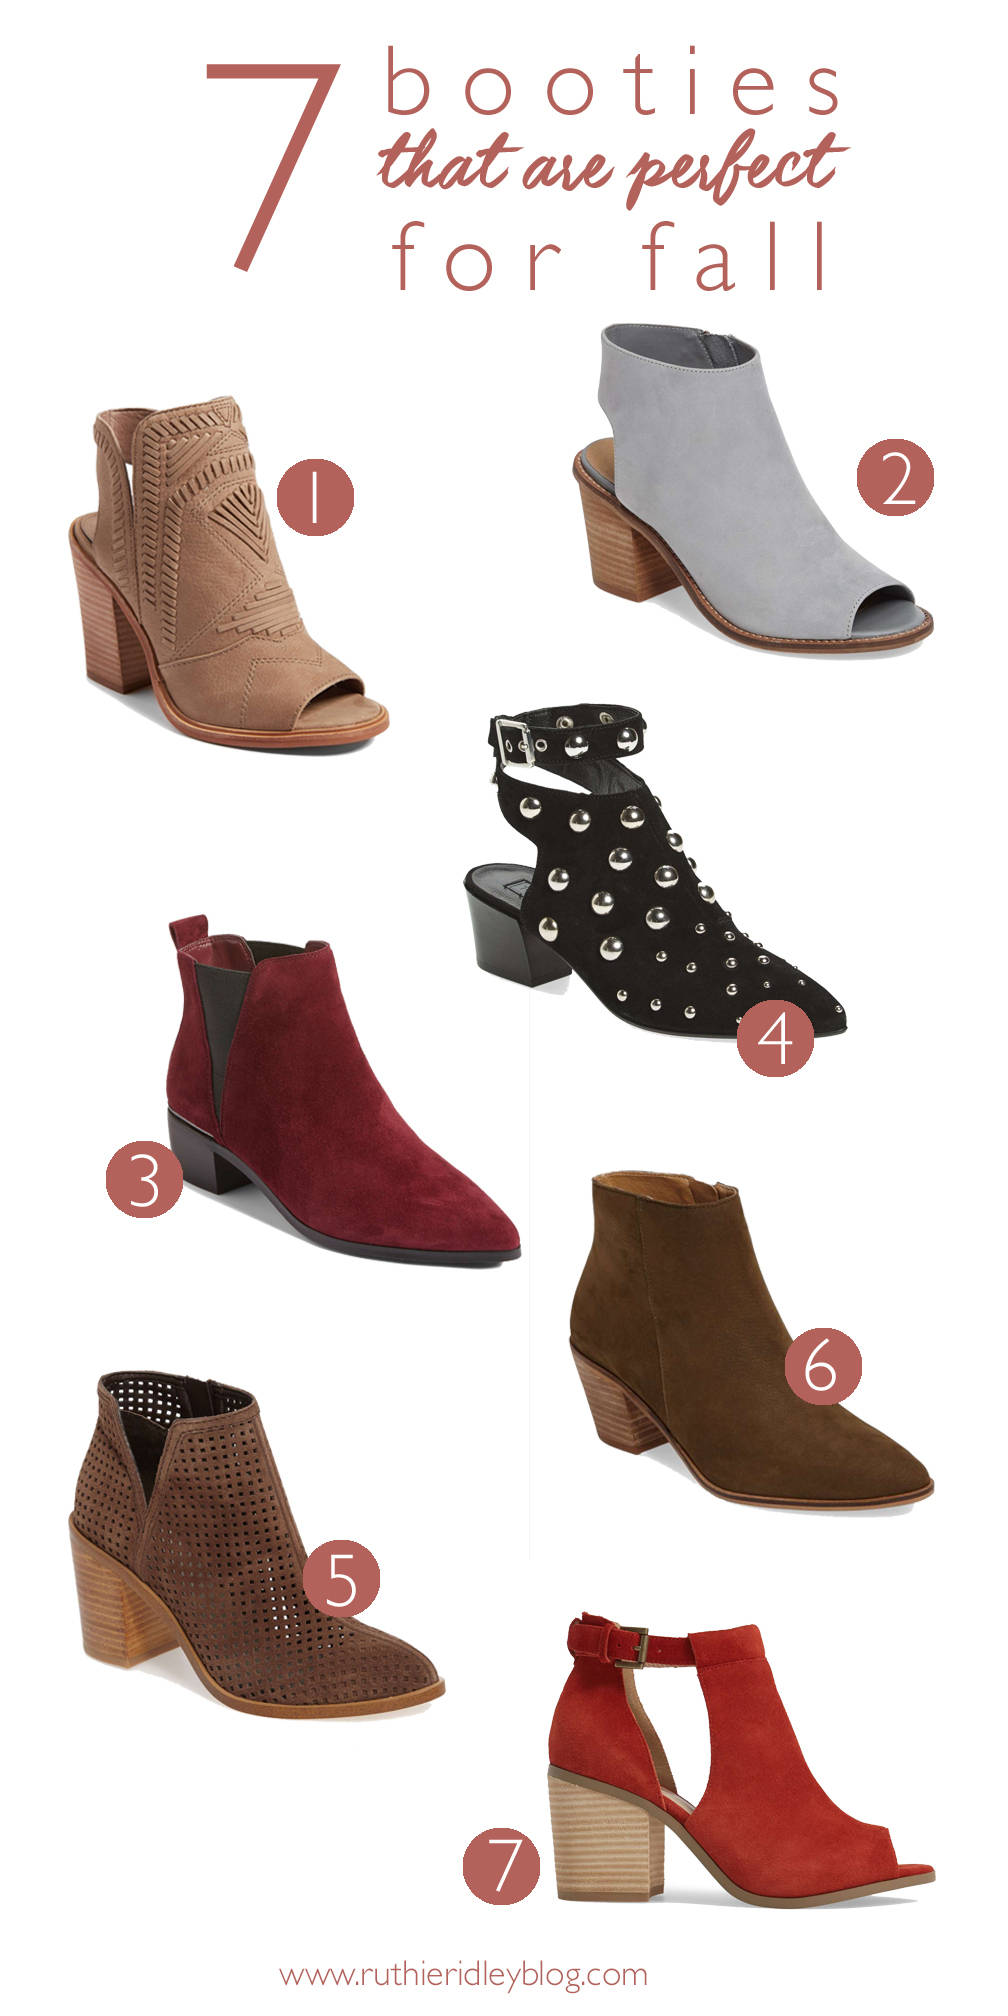 Open toe, studded, heeled and all the colors.... check out these perfect booties for Fall!